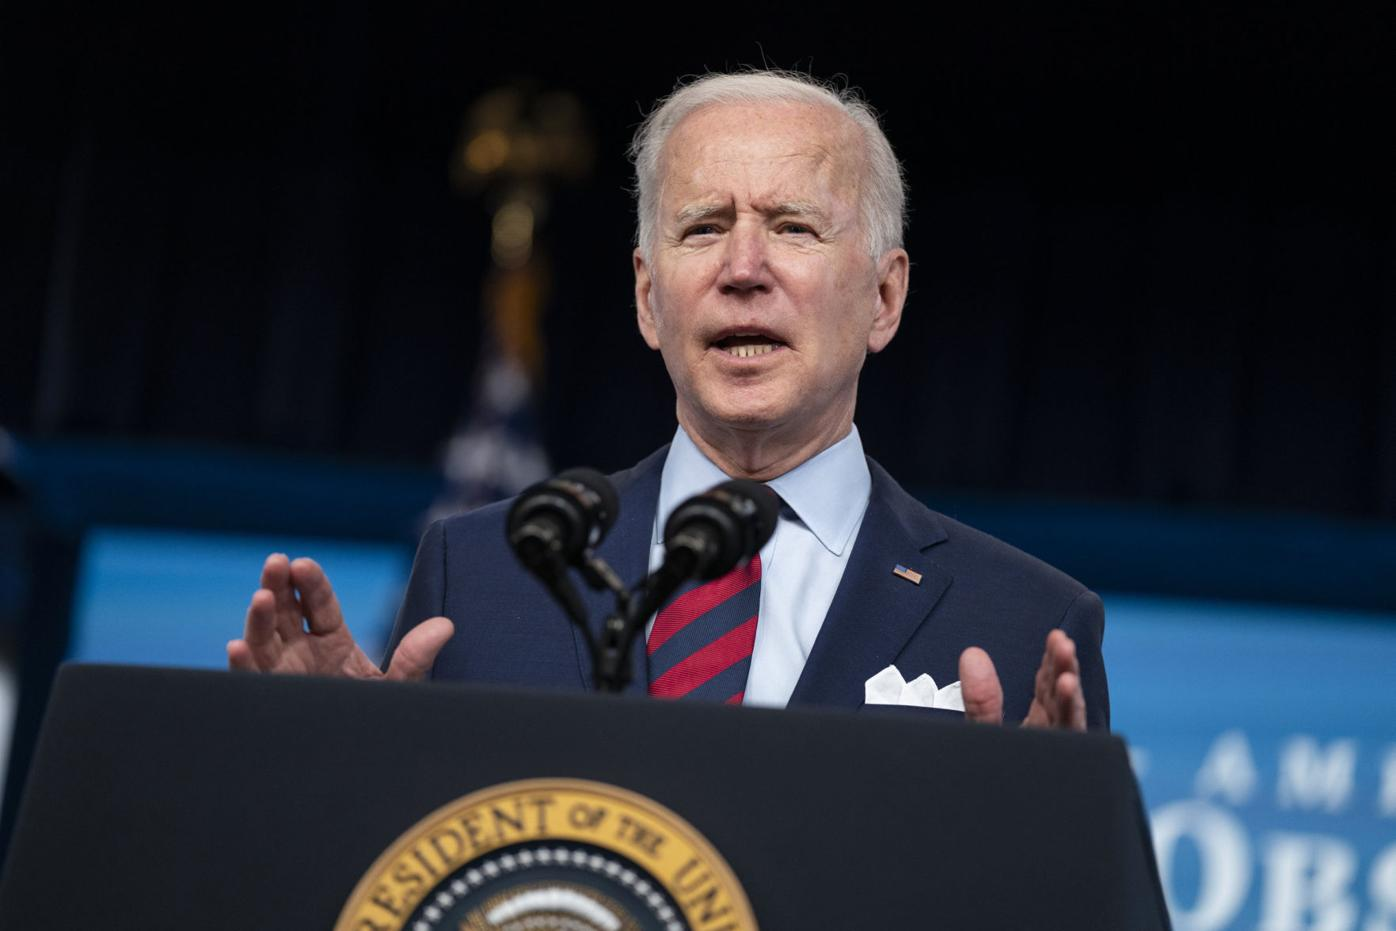 Tourism offices announce tour self-guided tour of locations special to Biden